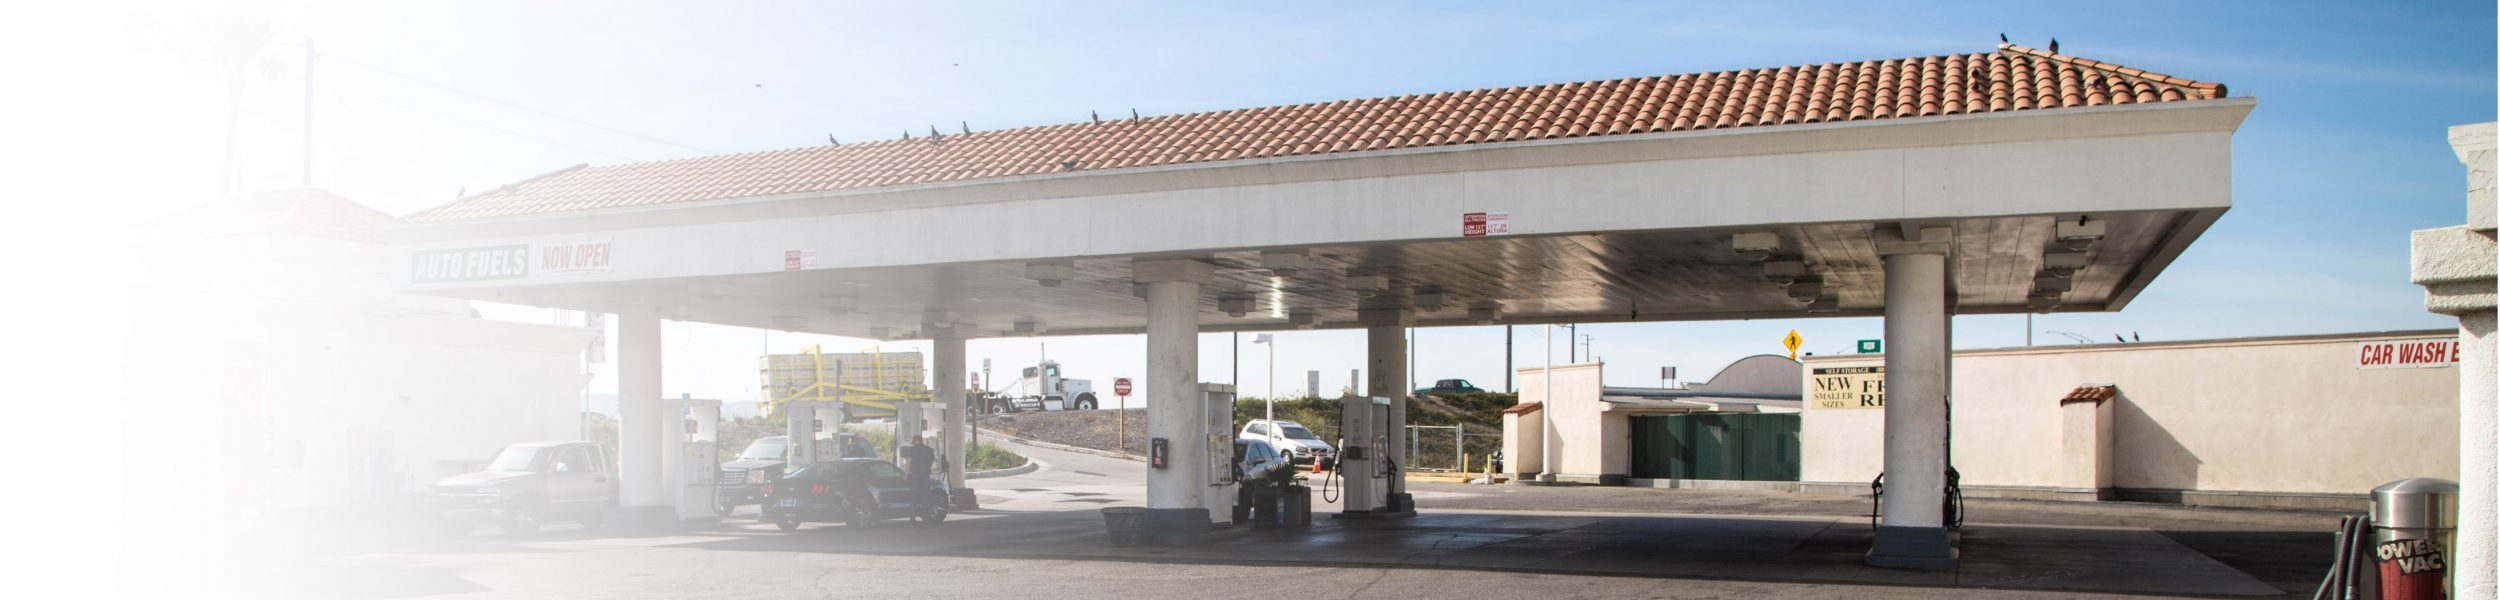 Gasoline independent quality discount at auto fuels gas station located right off the 101 freeway at the rice exit solutioingenieria Images